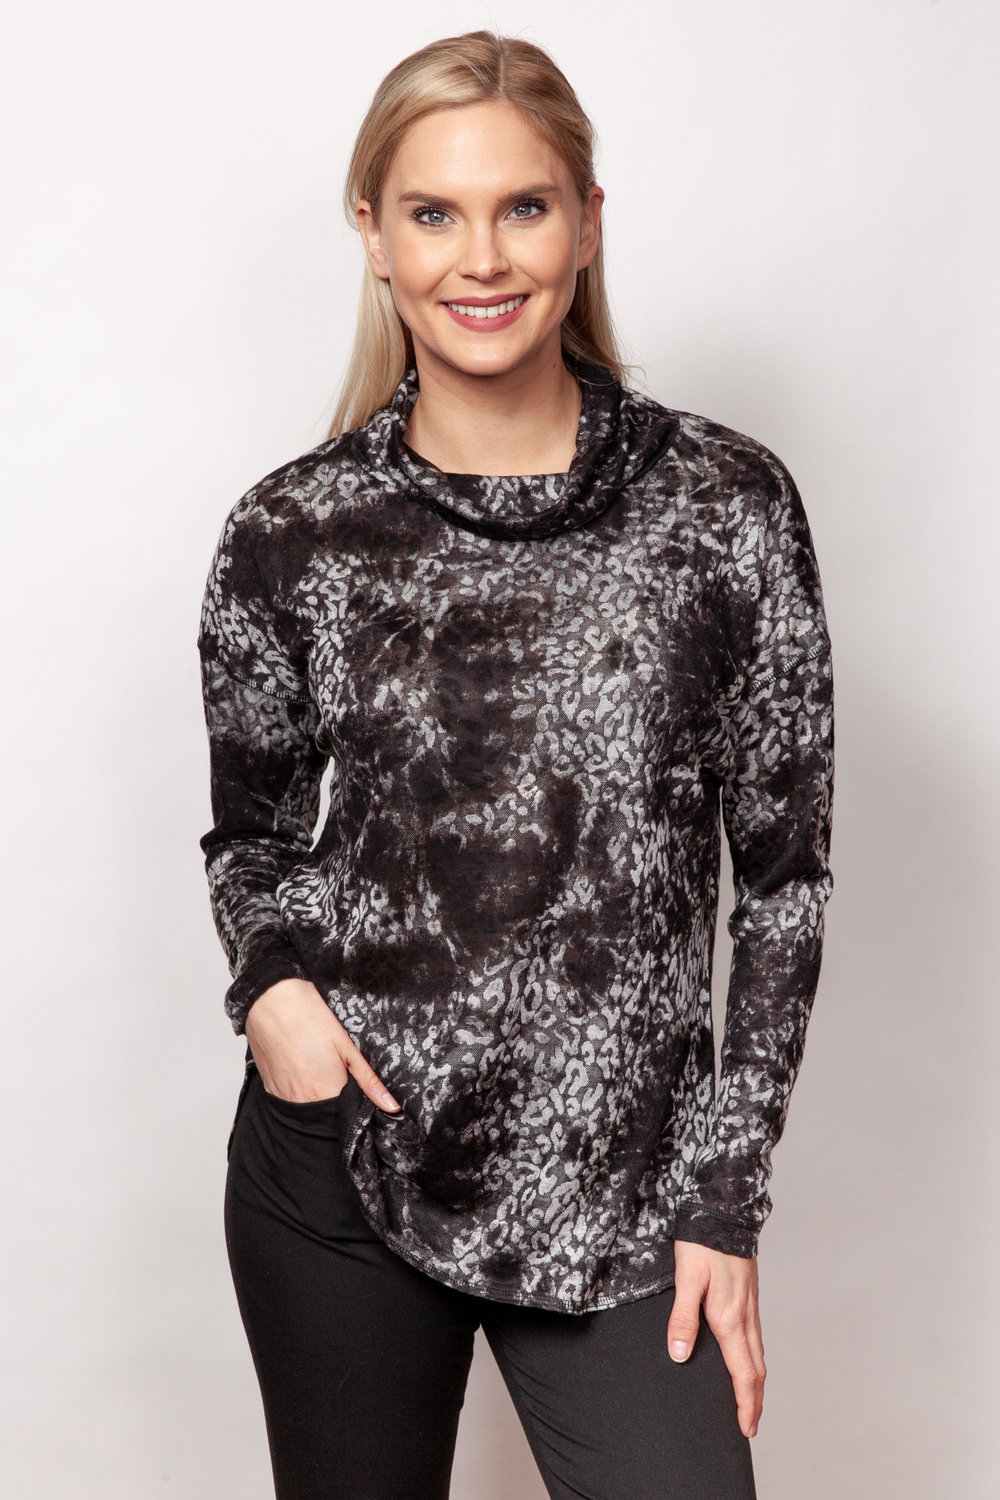 Copy of Style # 94440-19, p 5 <br/>Animal Jacquard <br/>Colors: Charcoal + 1 other